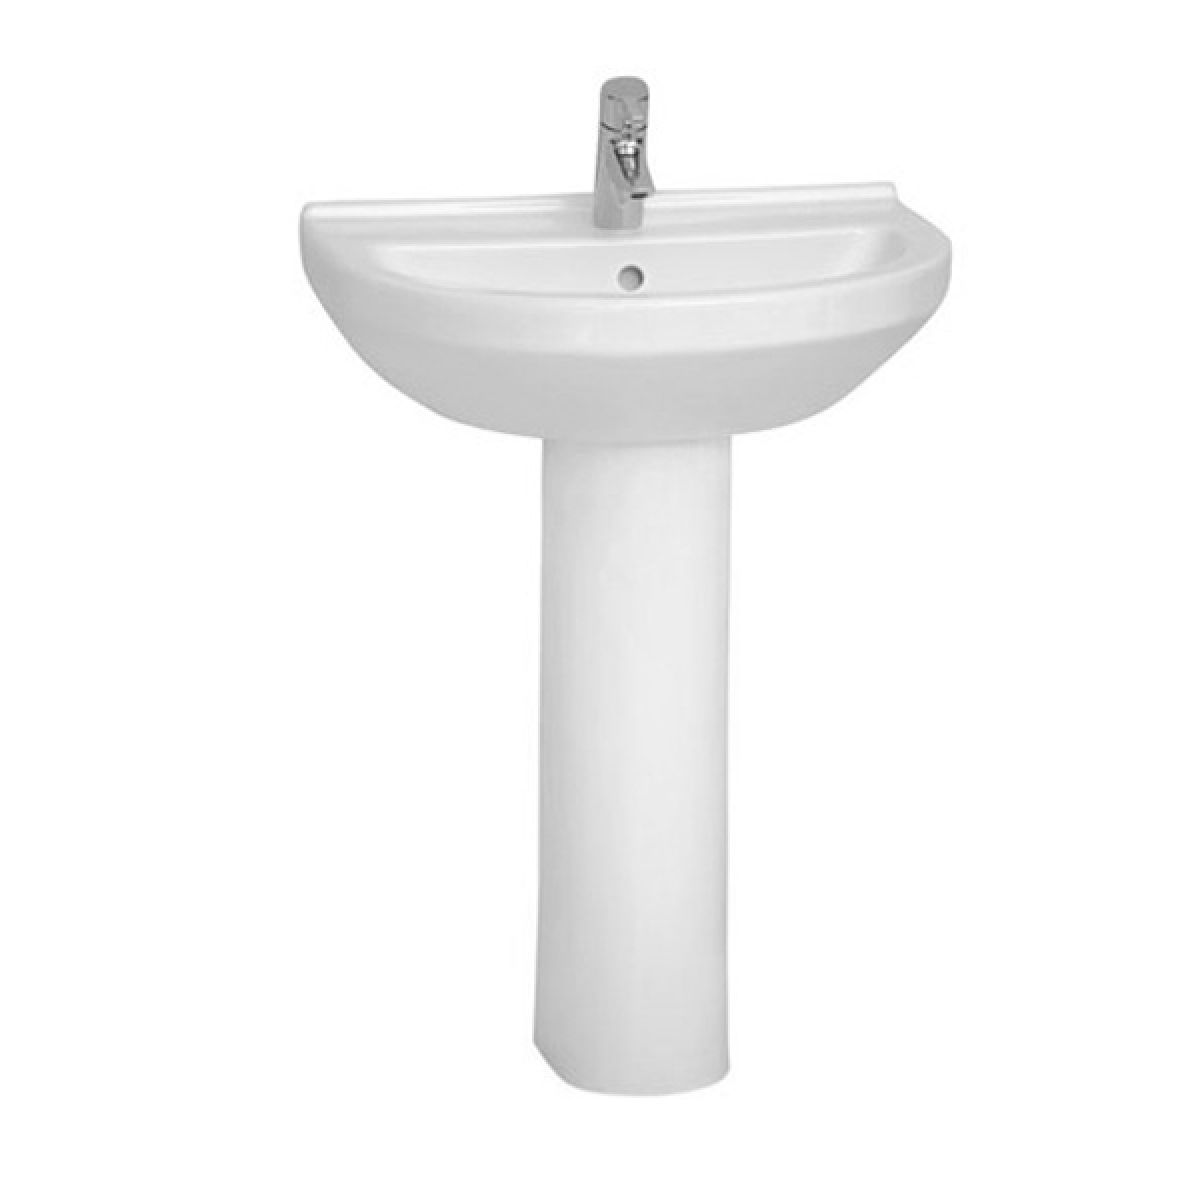 Vitra S50 1 Tap Hole Round Basin with Full Pedestal 600mm